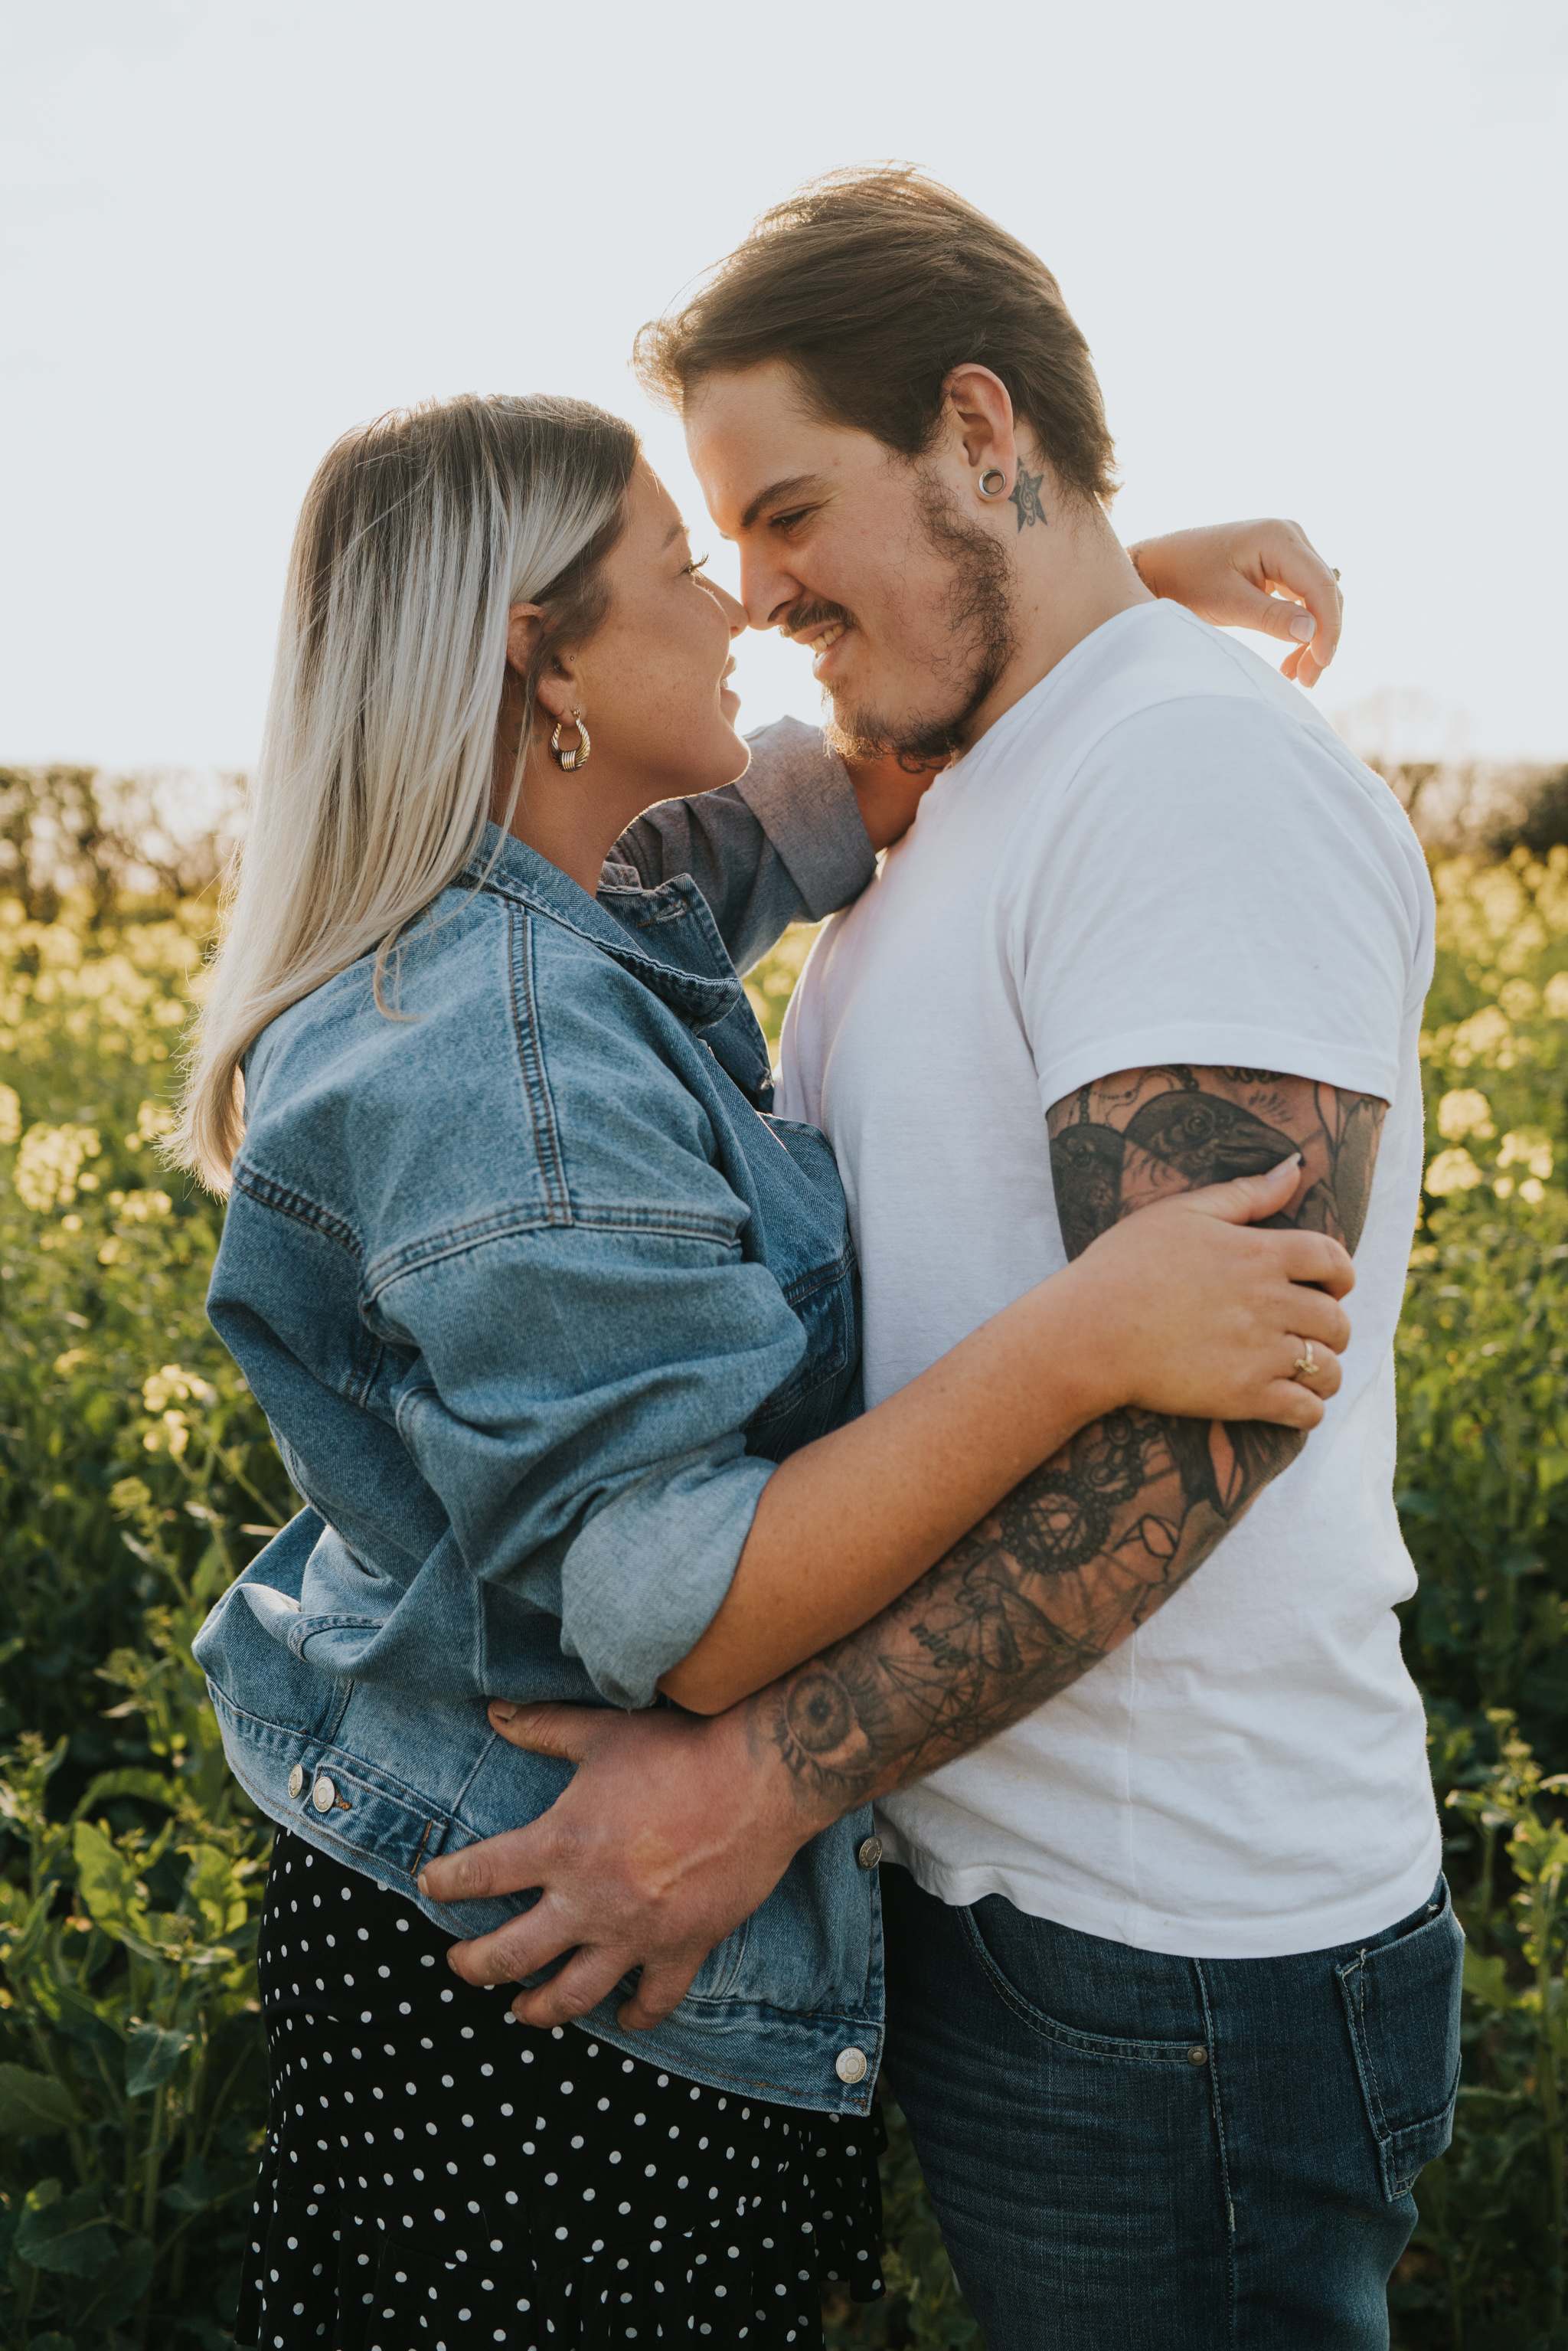 chloe-dan-pre-wedding-engagement-session-countryside-grace-elizabeth-colchester-essex-alternative-wedding-lifestyle-photographer-suffolk-norfolk-devon (9 of 50).jpg